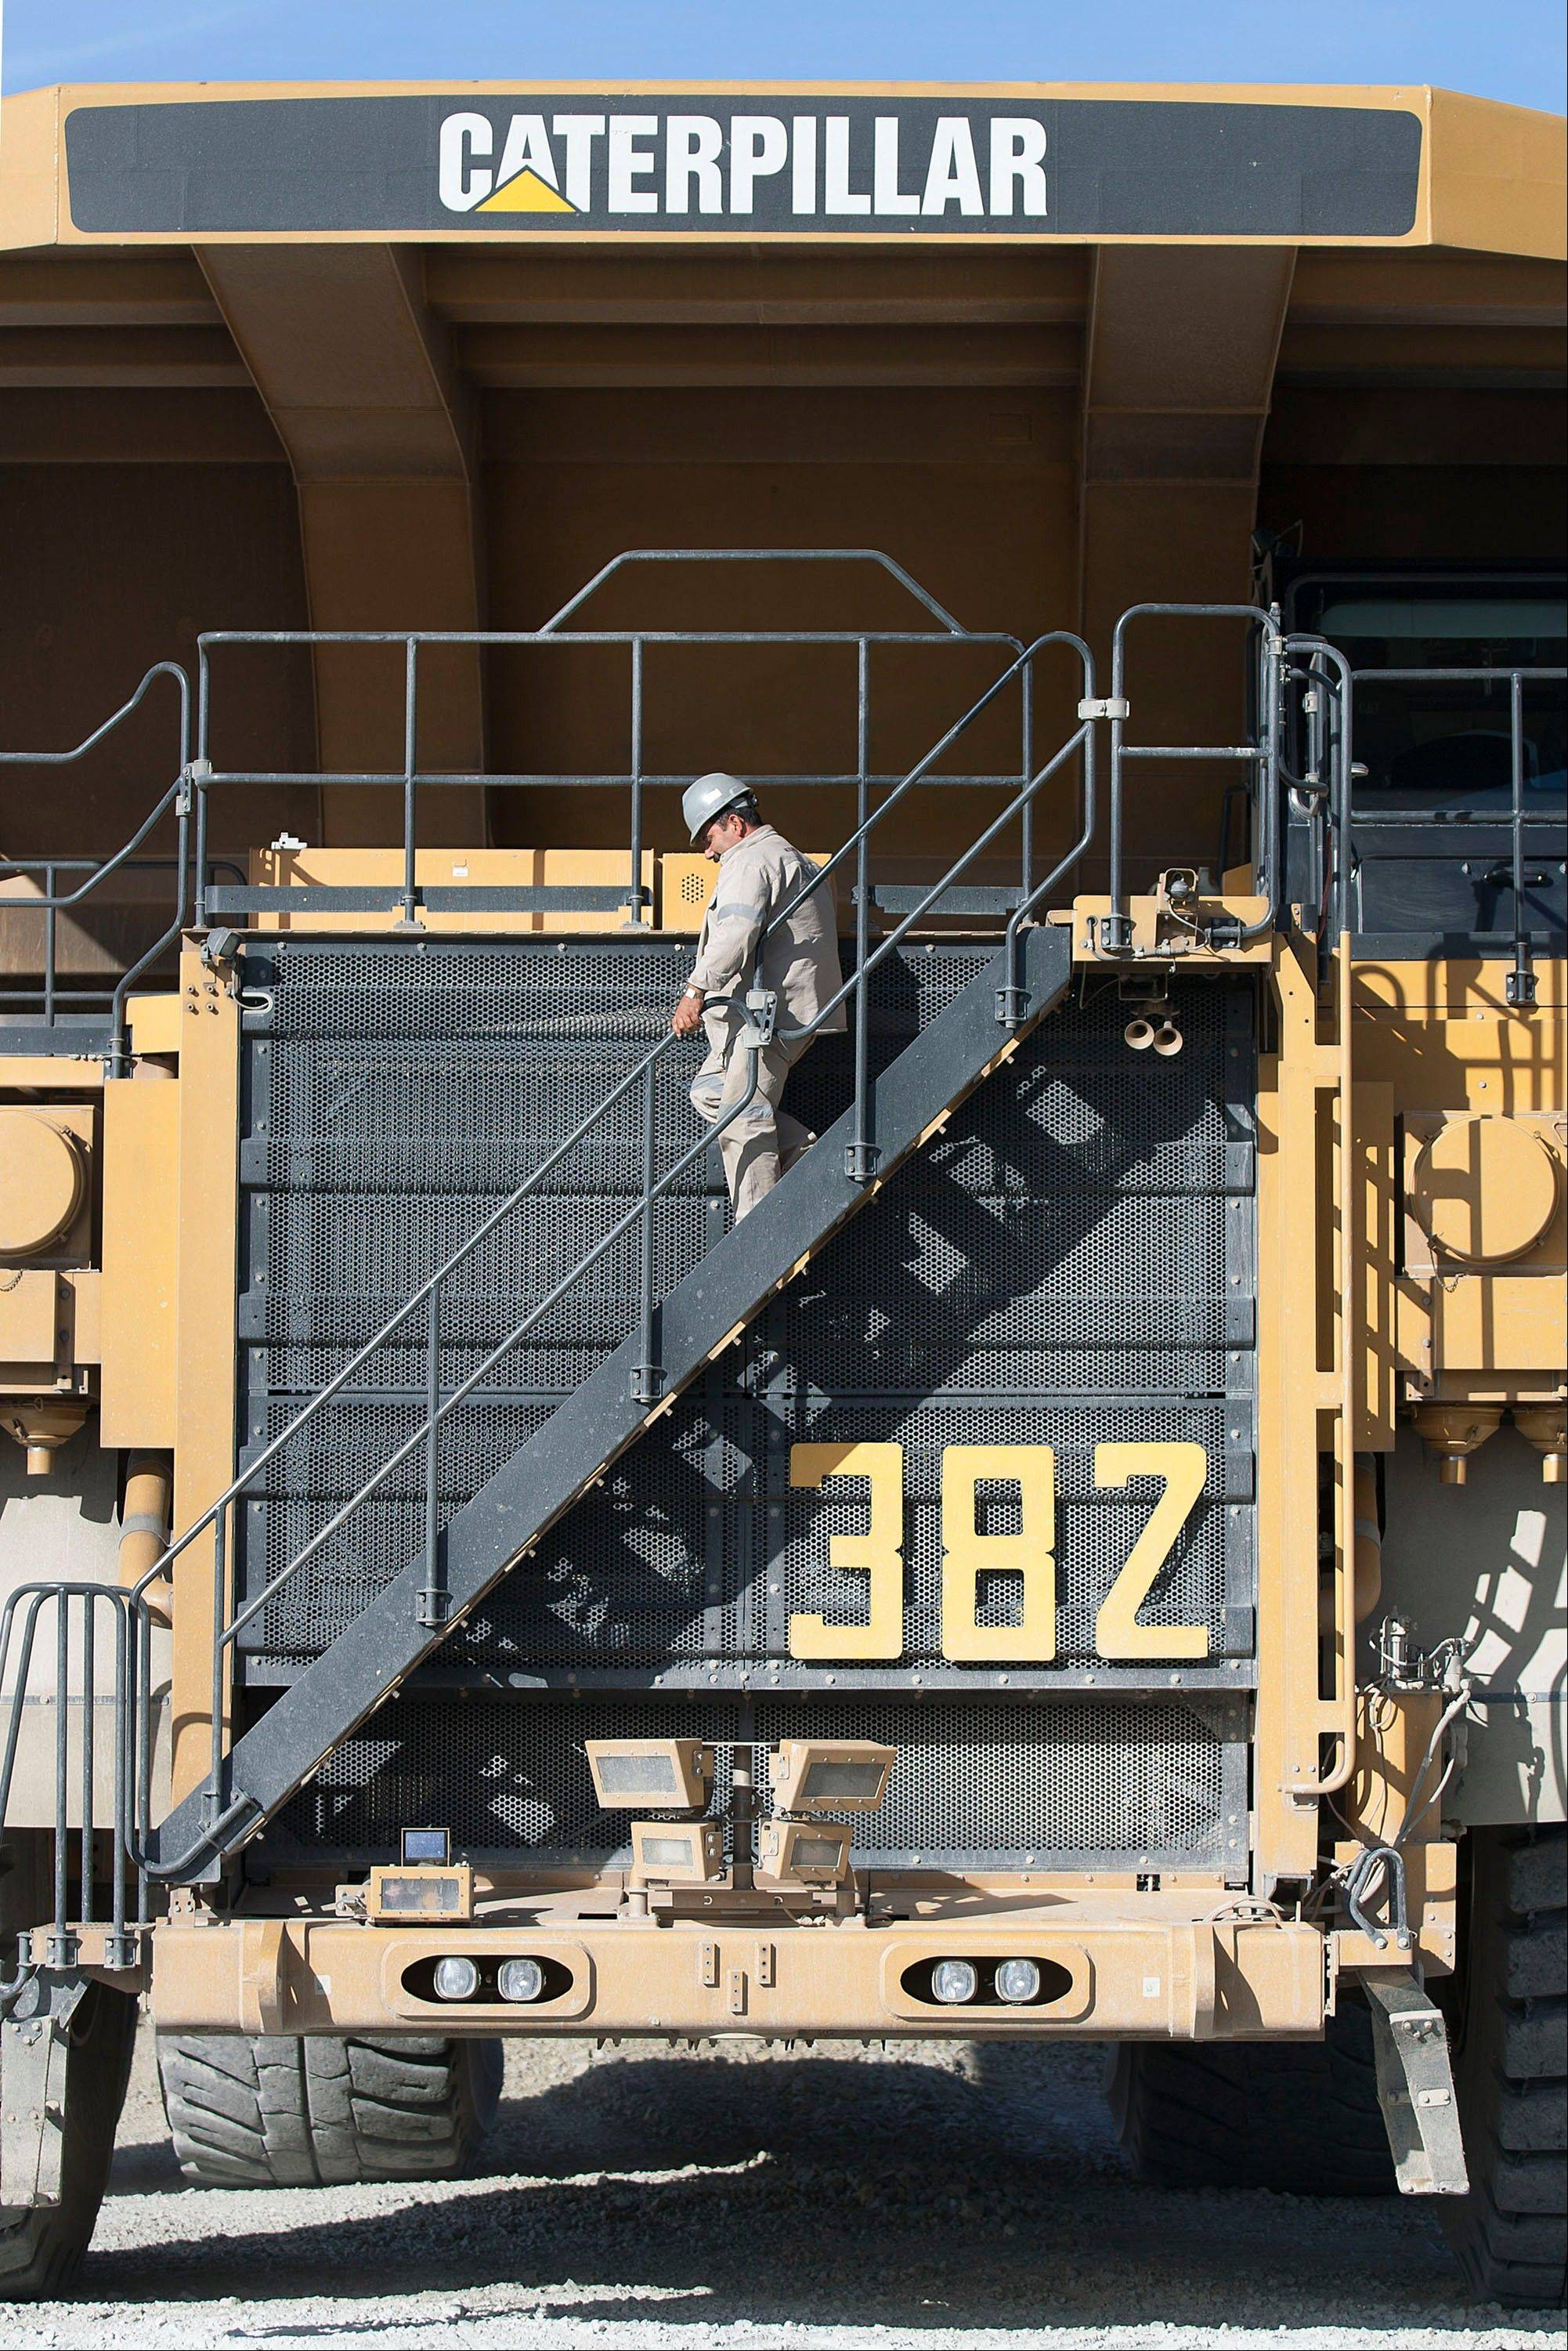 An worker descends the stairs or a Caterpillar Inc. truck Mnoday at Grupo Mexico SAB's La Caridad open pit copper mine in Sonora, Mexico. Exxon Mobil, Caterpillar and Alcoa -- Dow members whose fortunes are tied to the prices of crude oil and other basic materials -- closed down 1 percent or more on Friday.